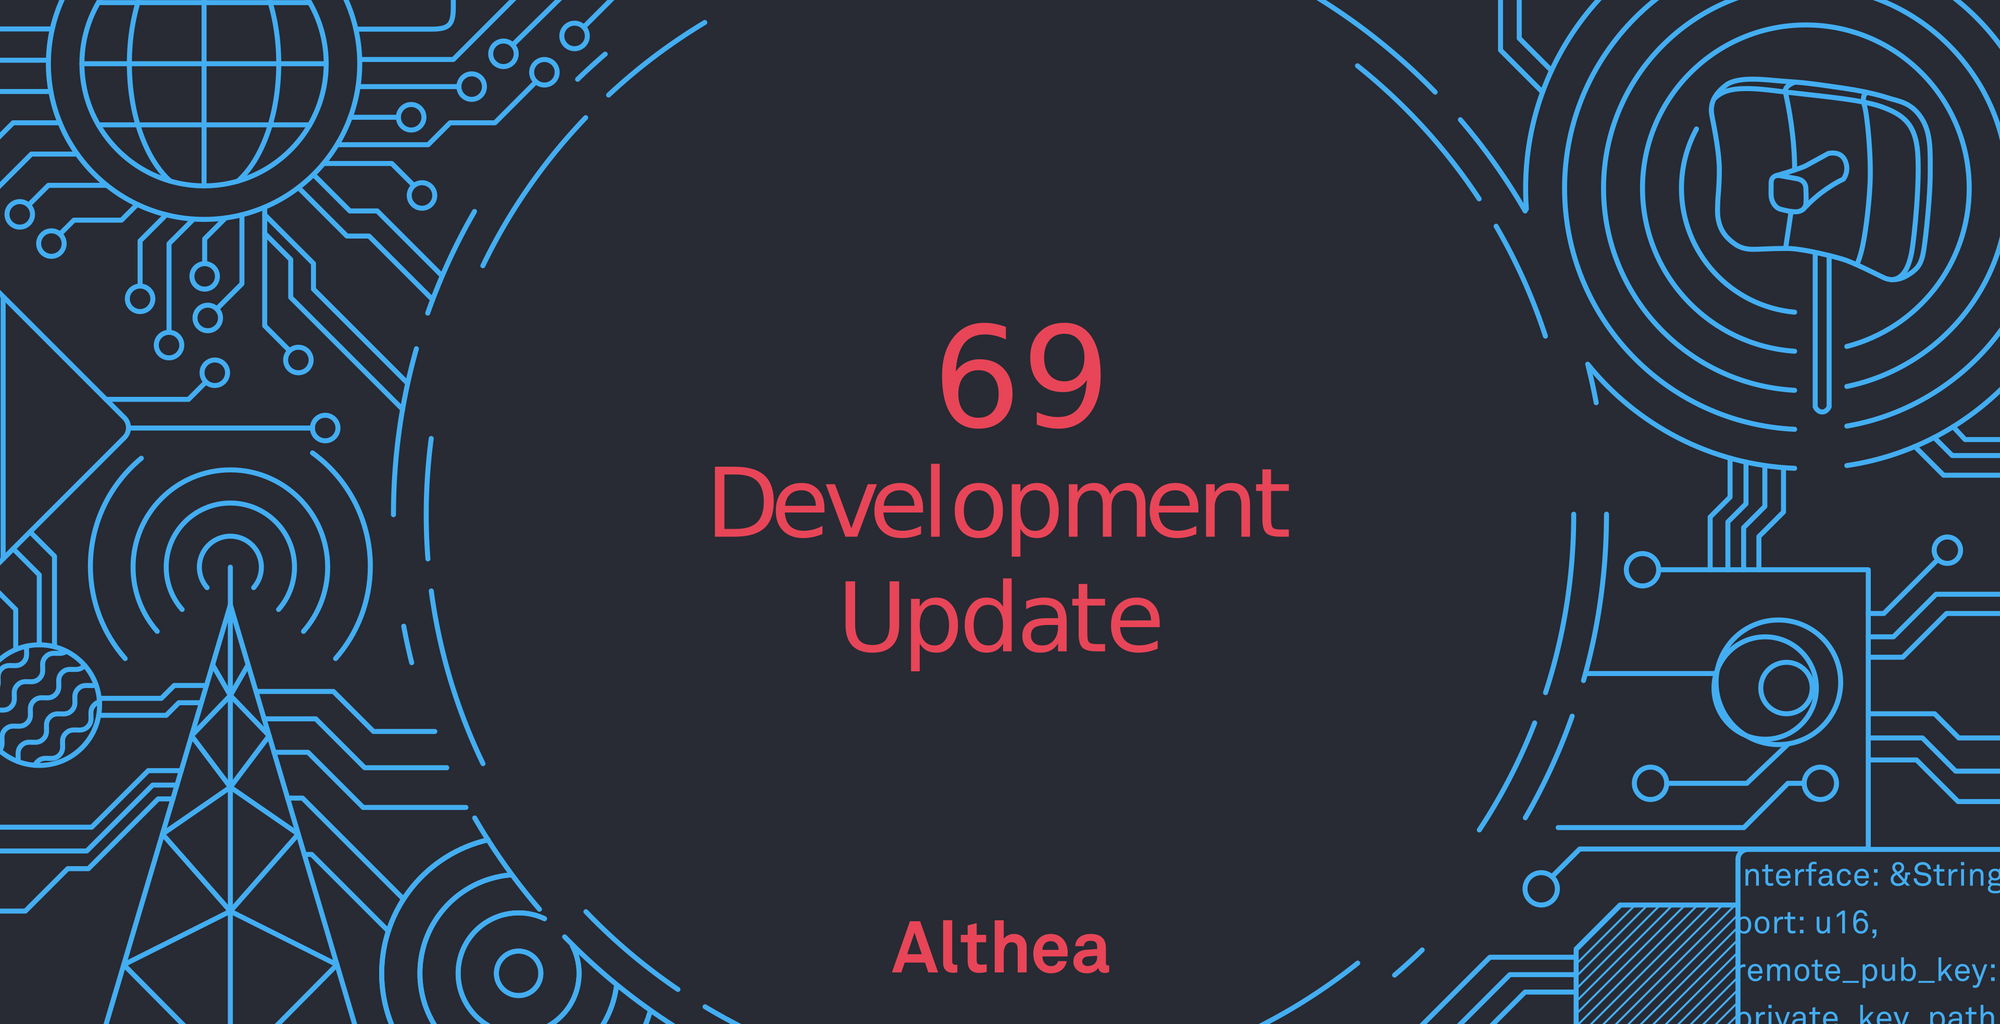 Althea Development Update #69: Decentralization